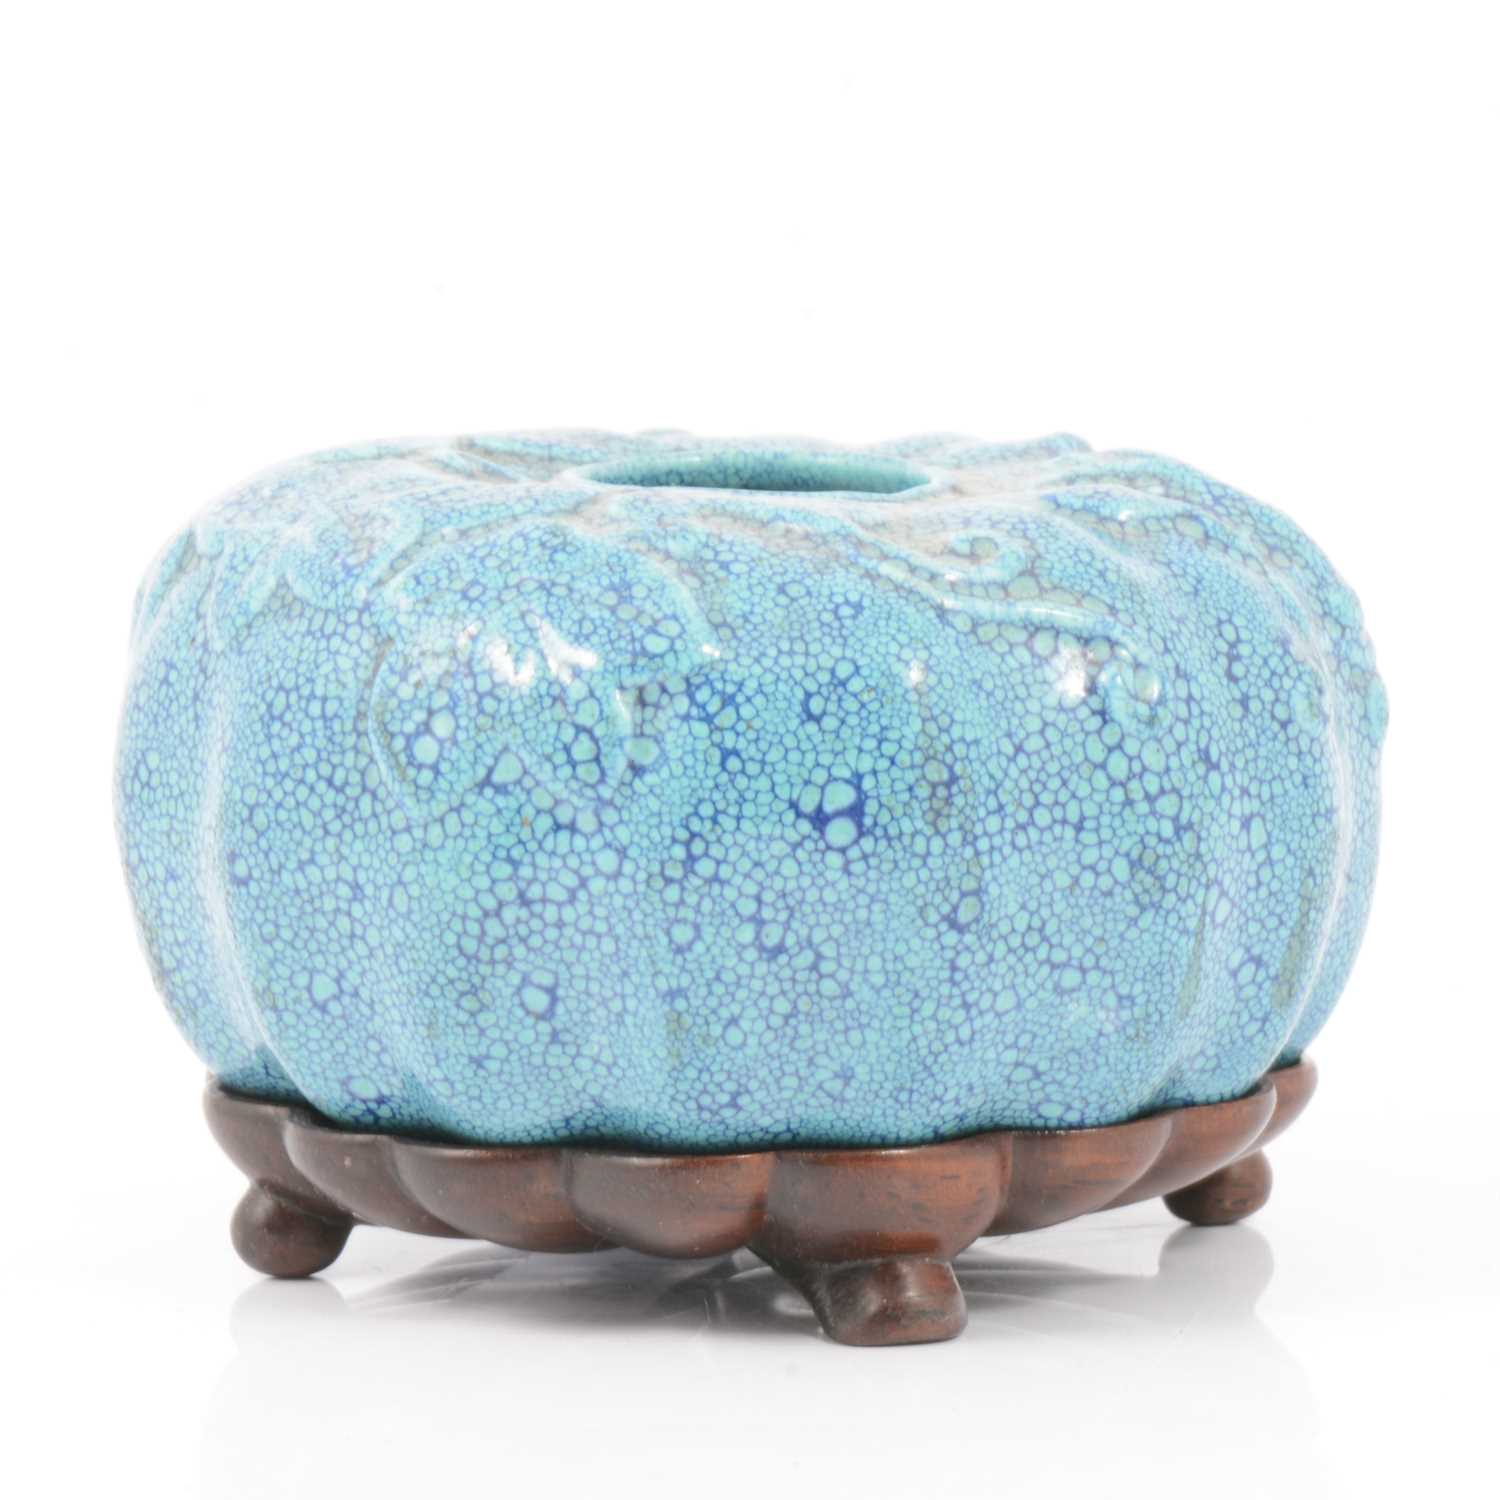 86 - Chinese porcelain inkpot.